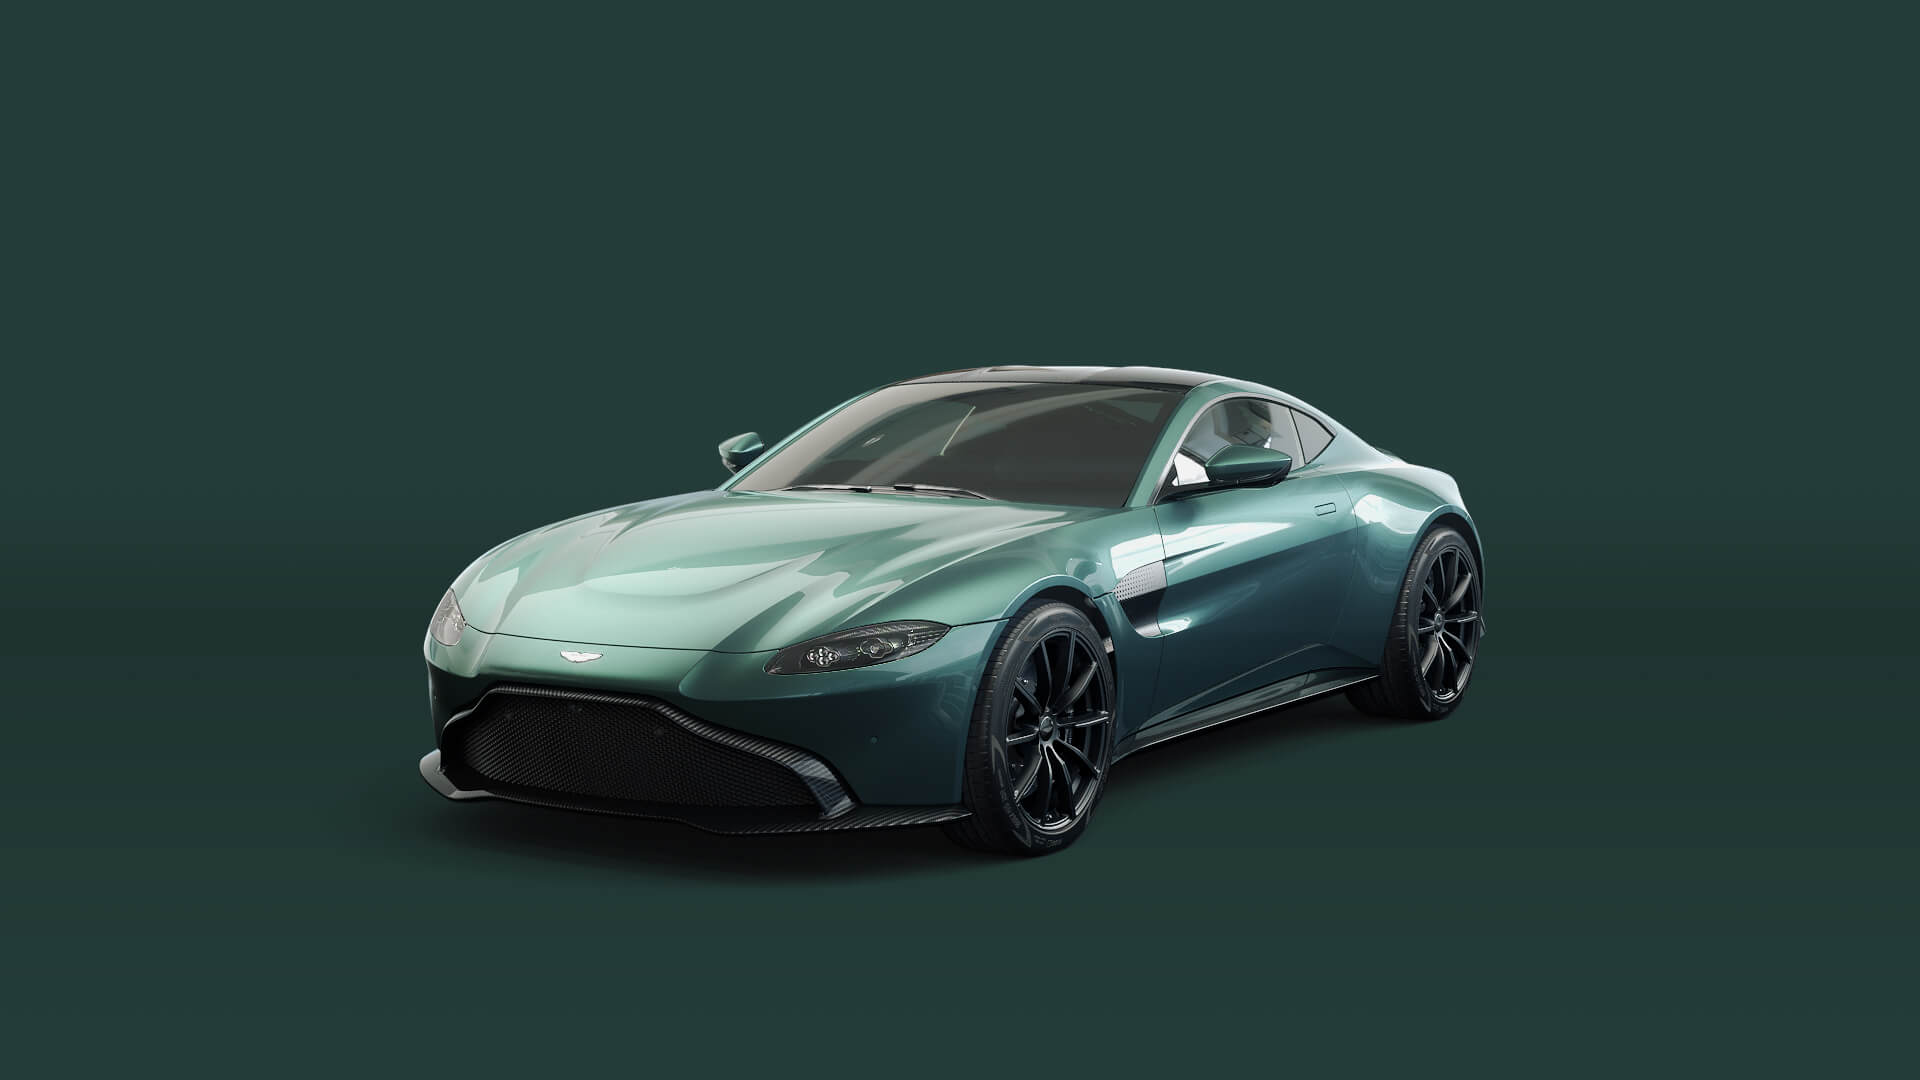 Aston Martin Dbx S First Luxury Suv Wallpaper For Mobile Cityconnectapps